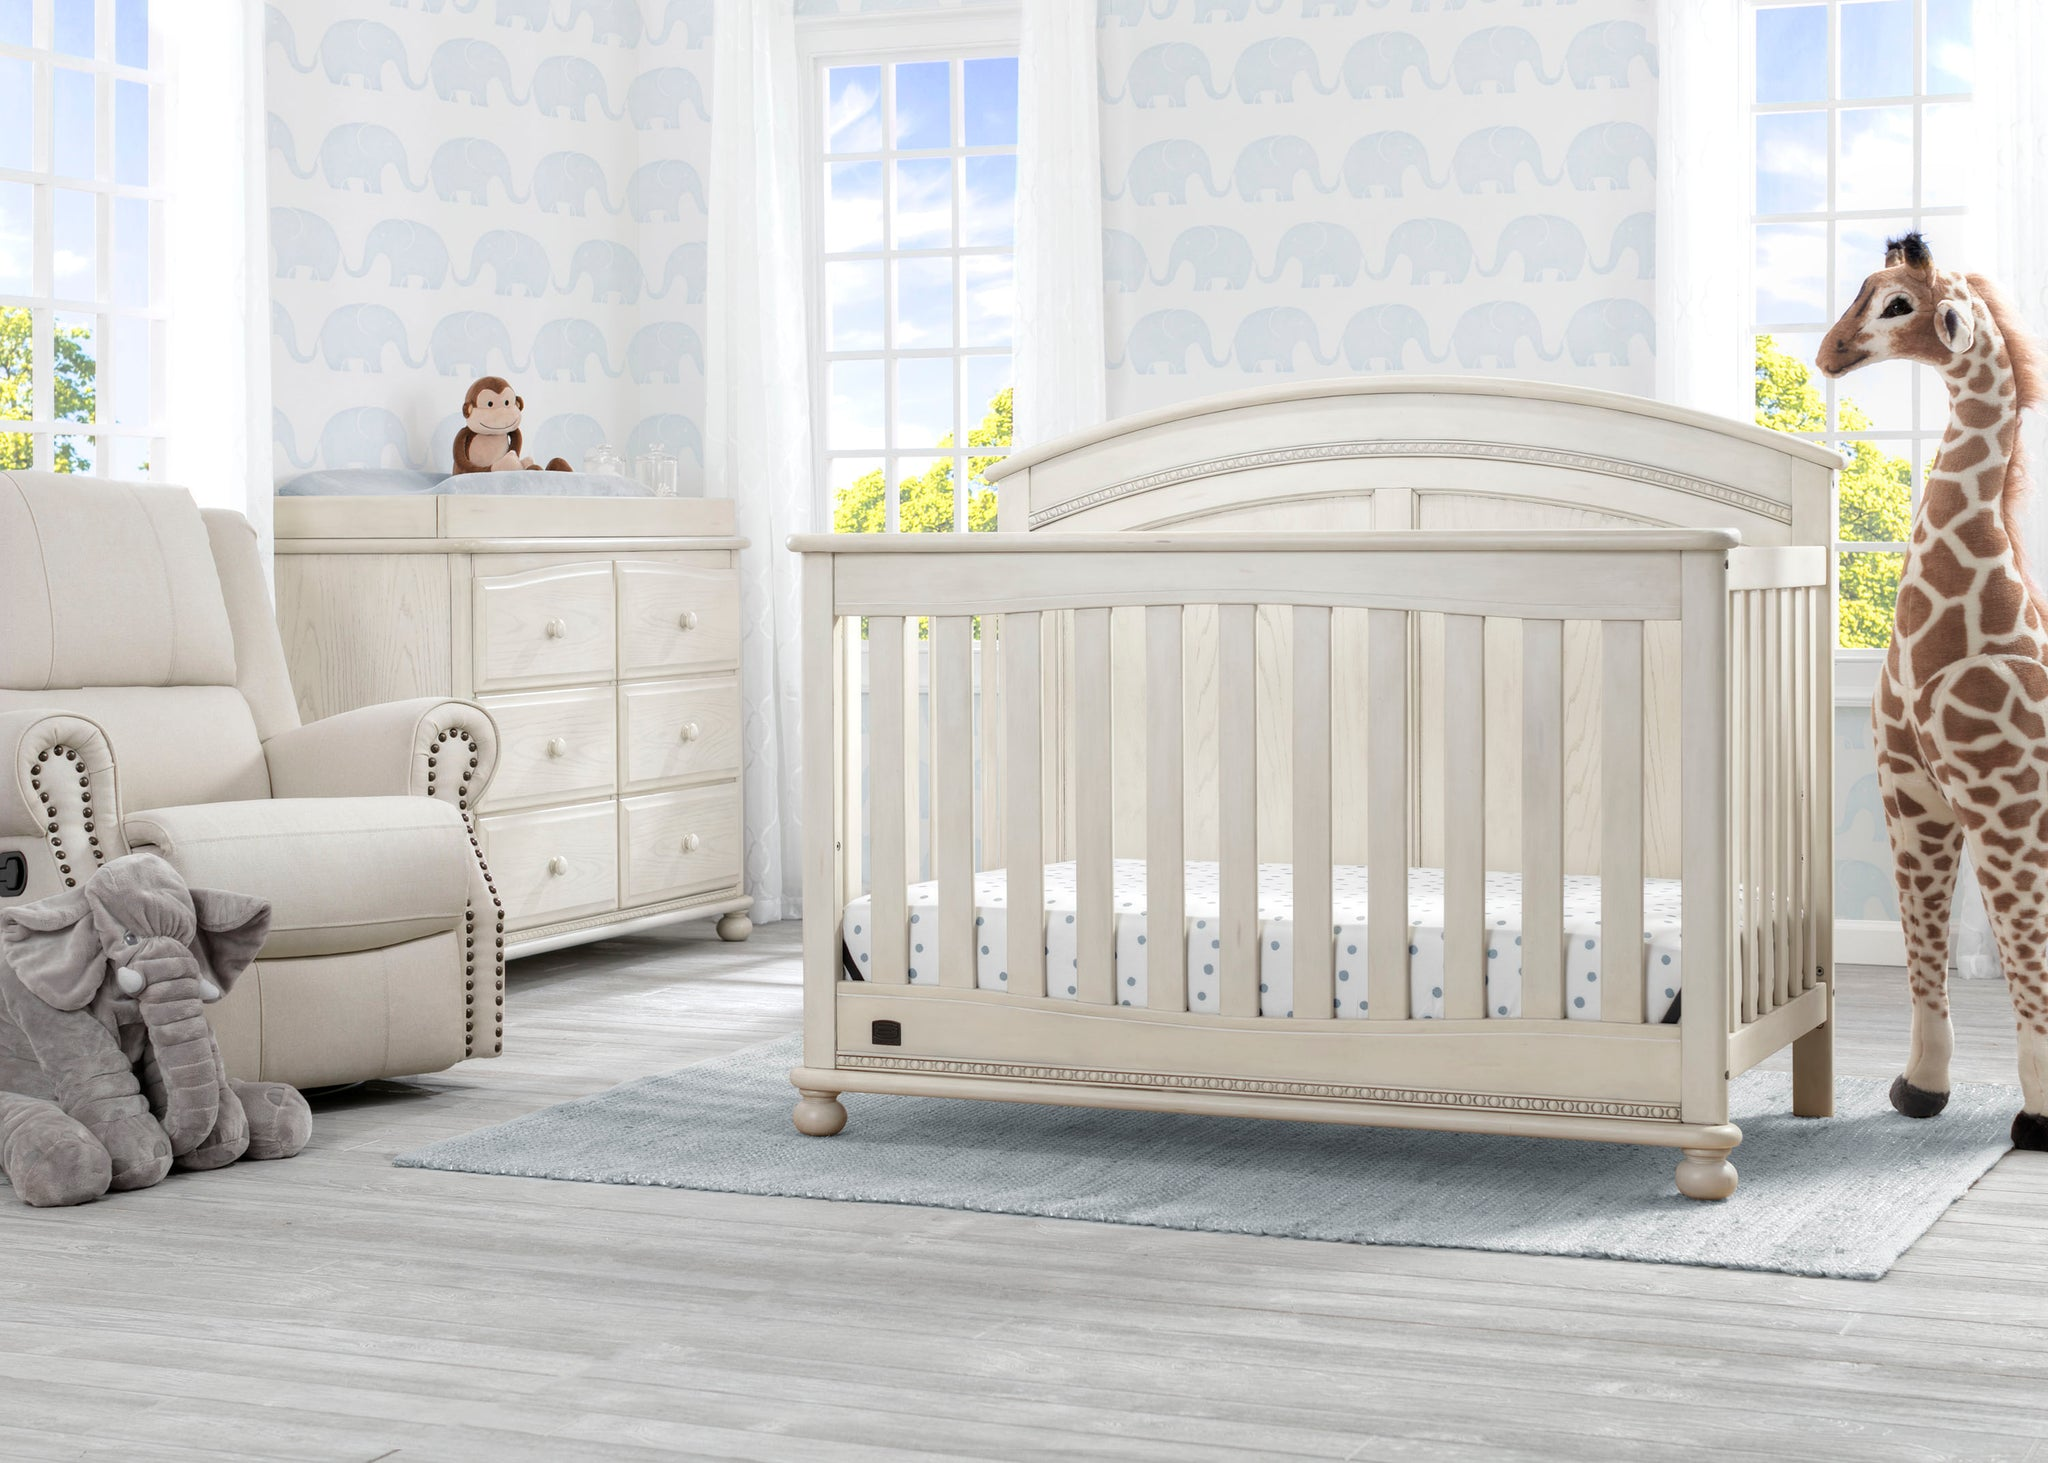 Simmons Kids Antique White (122) Ainsworth 4-in-1 Convertible Crib (W337250), Room View, a1a